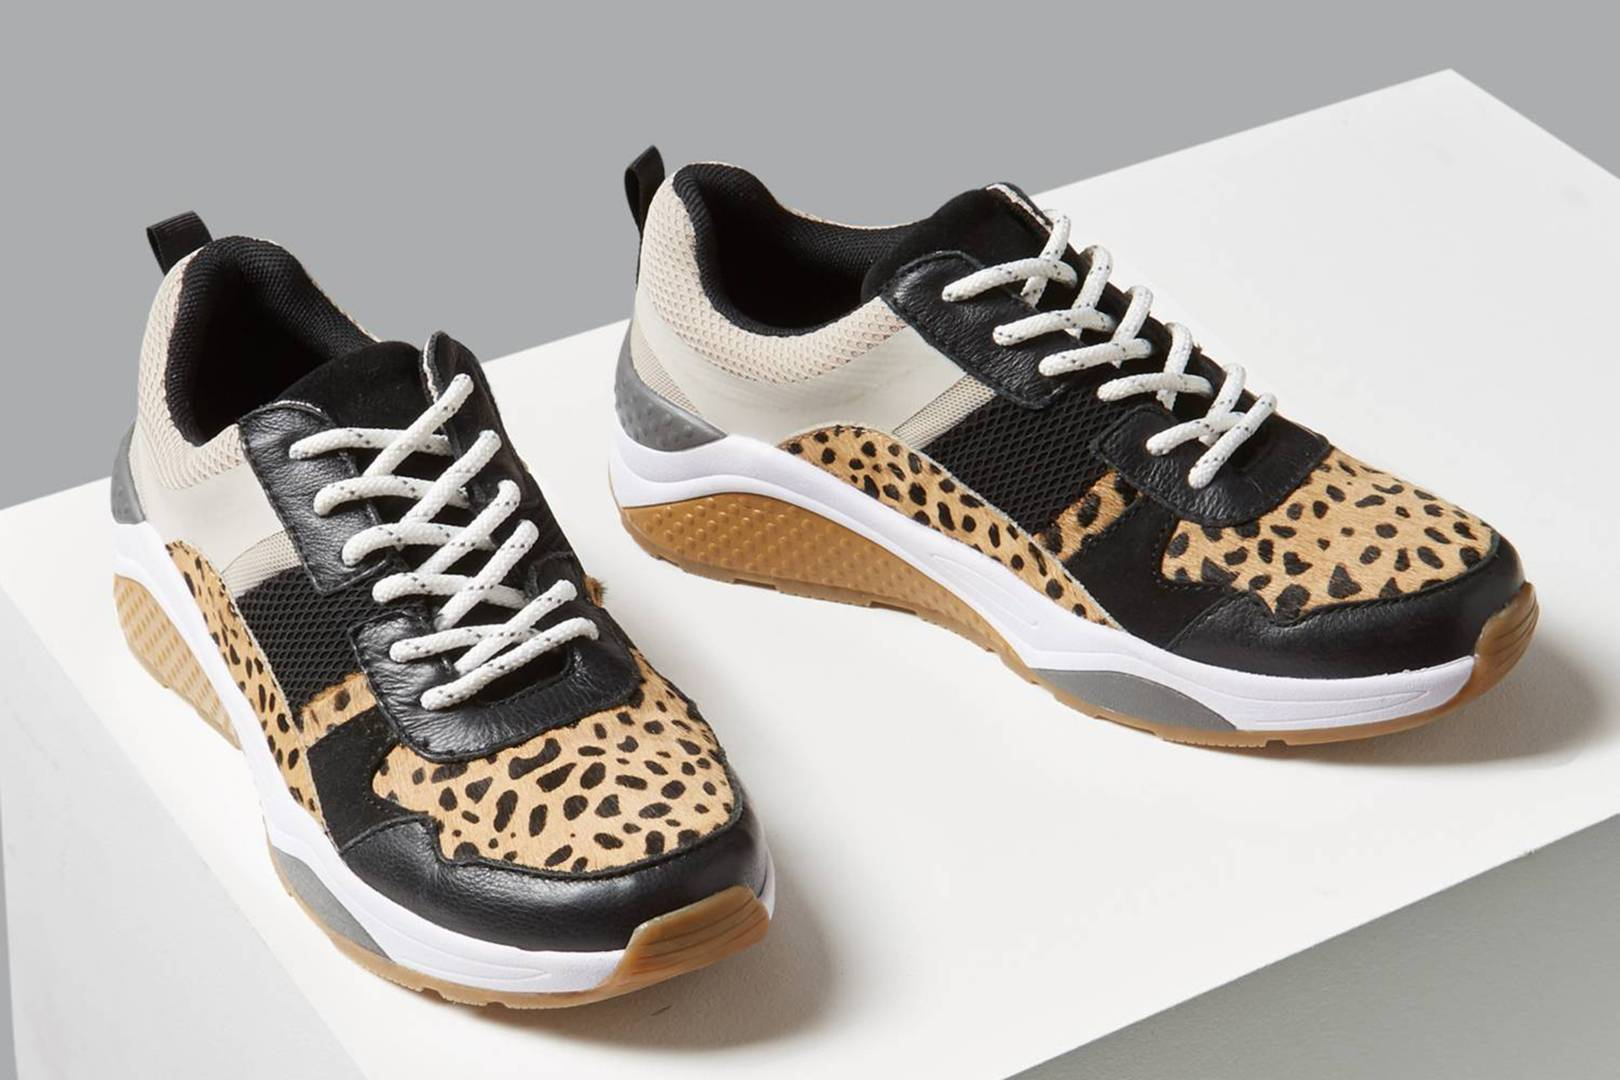 0d1d0524c03f M&S Has Restocked Its Sell-Out Leopard Print Trainers | Glamour UK